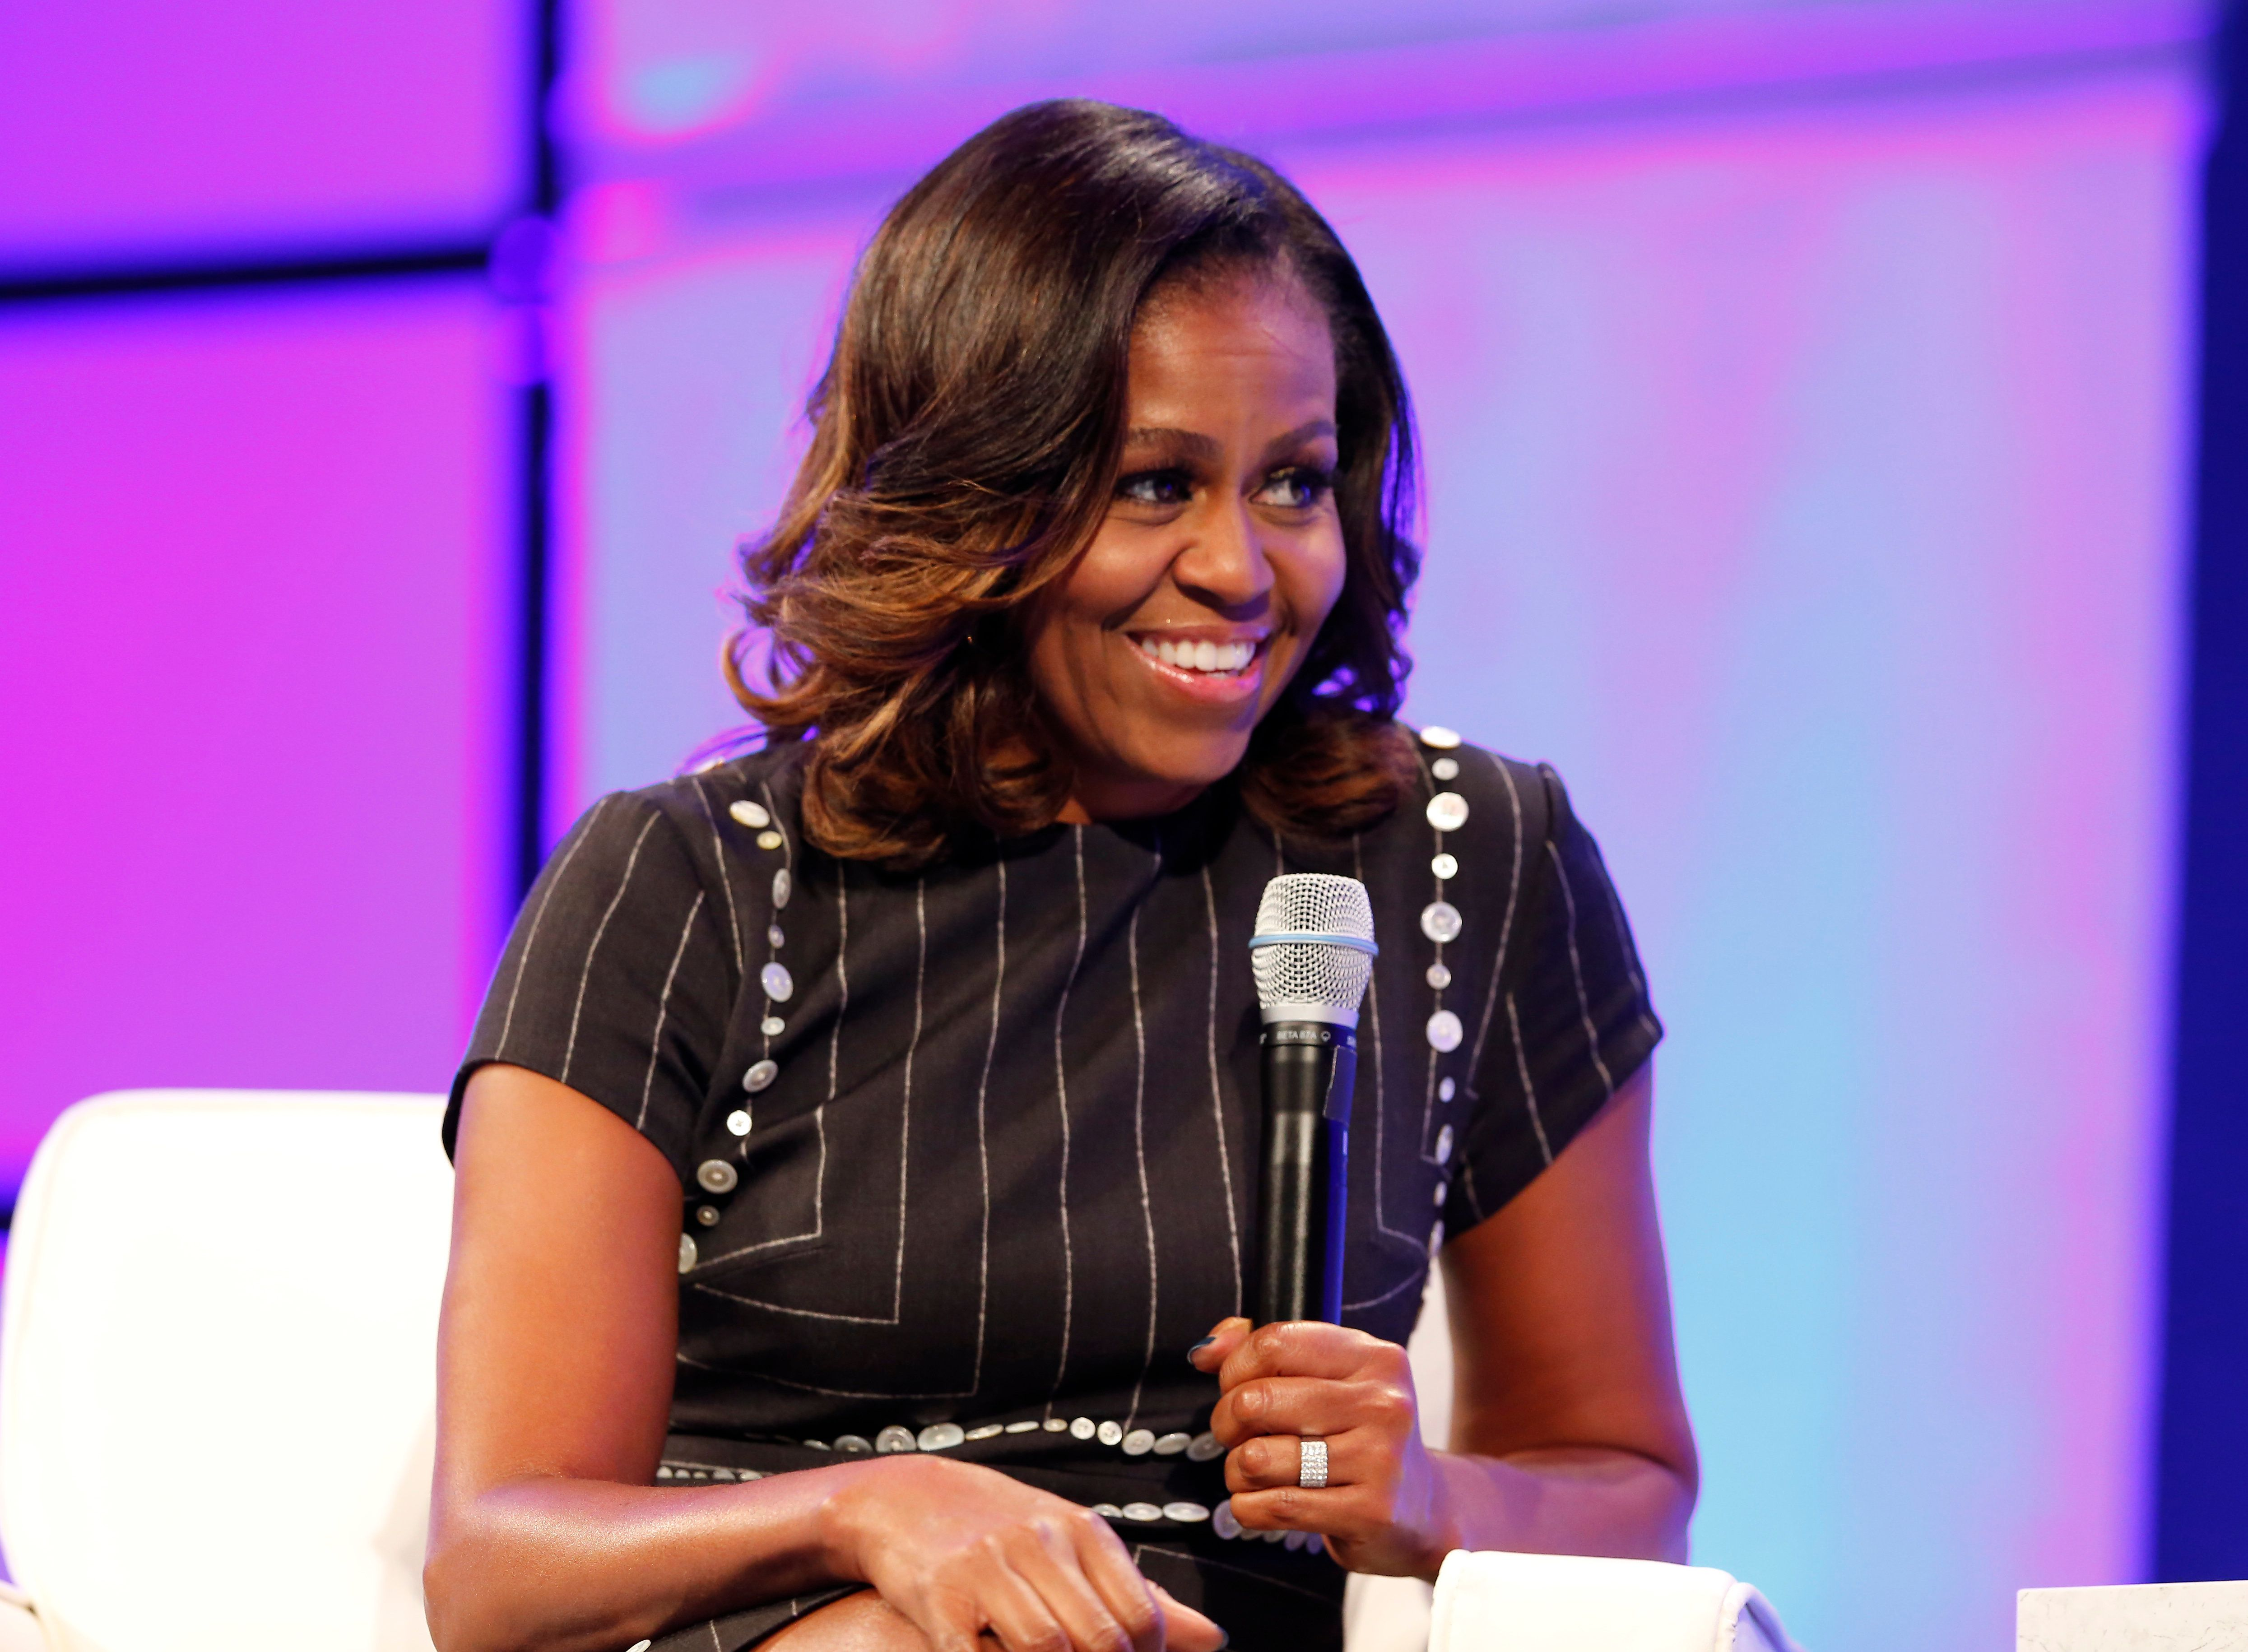 On Tuesday, Michelle Obama appeared at the Pennsylvania Conference for Women.